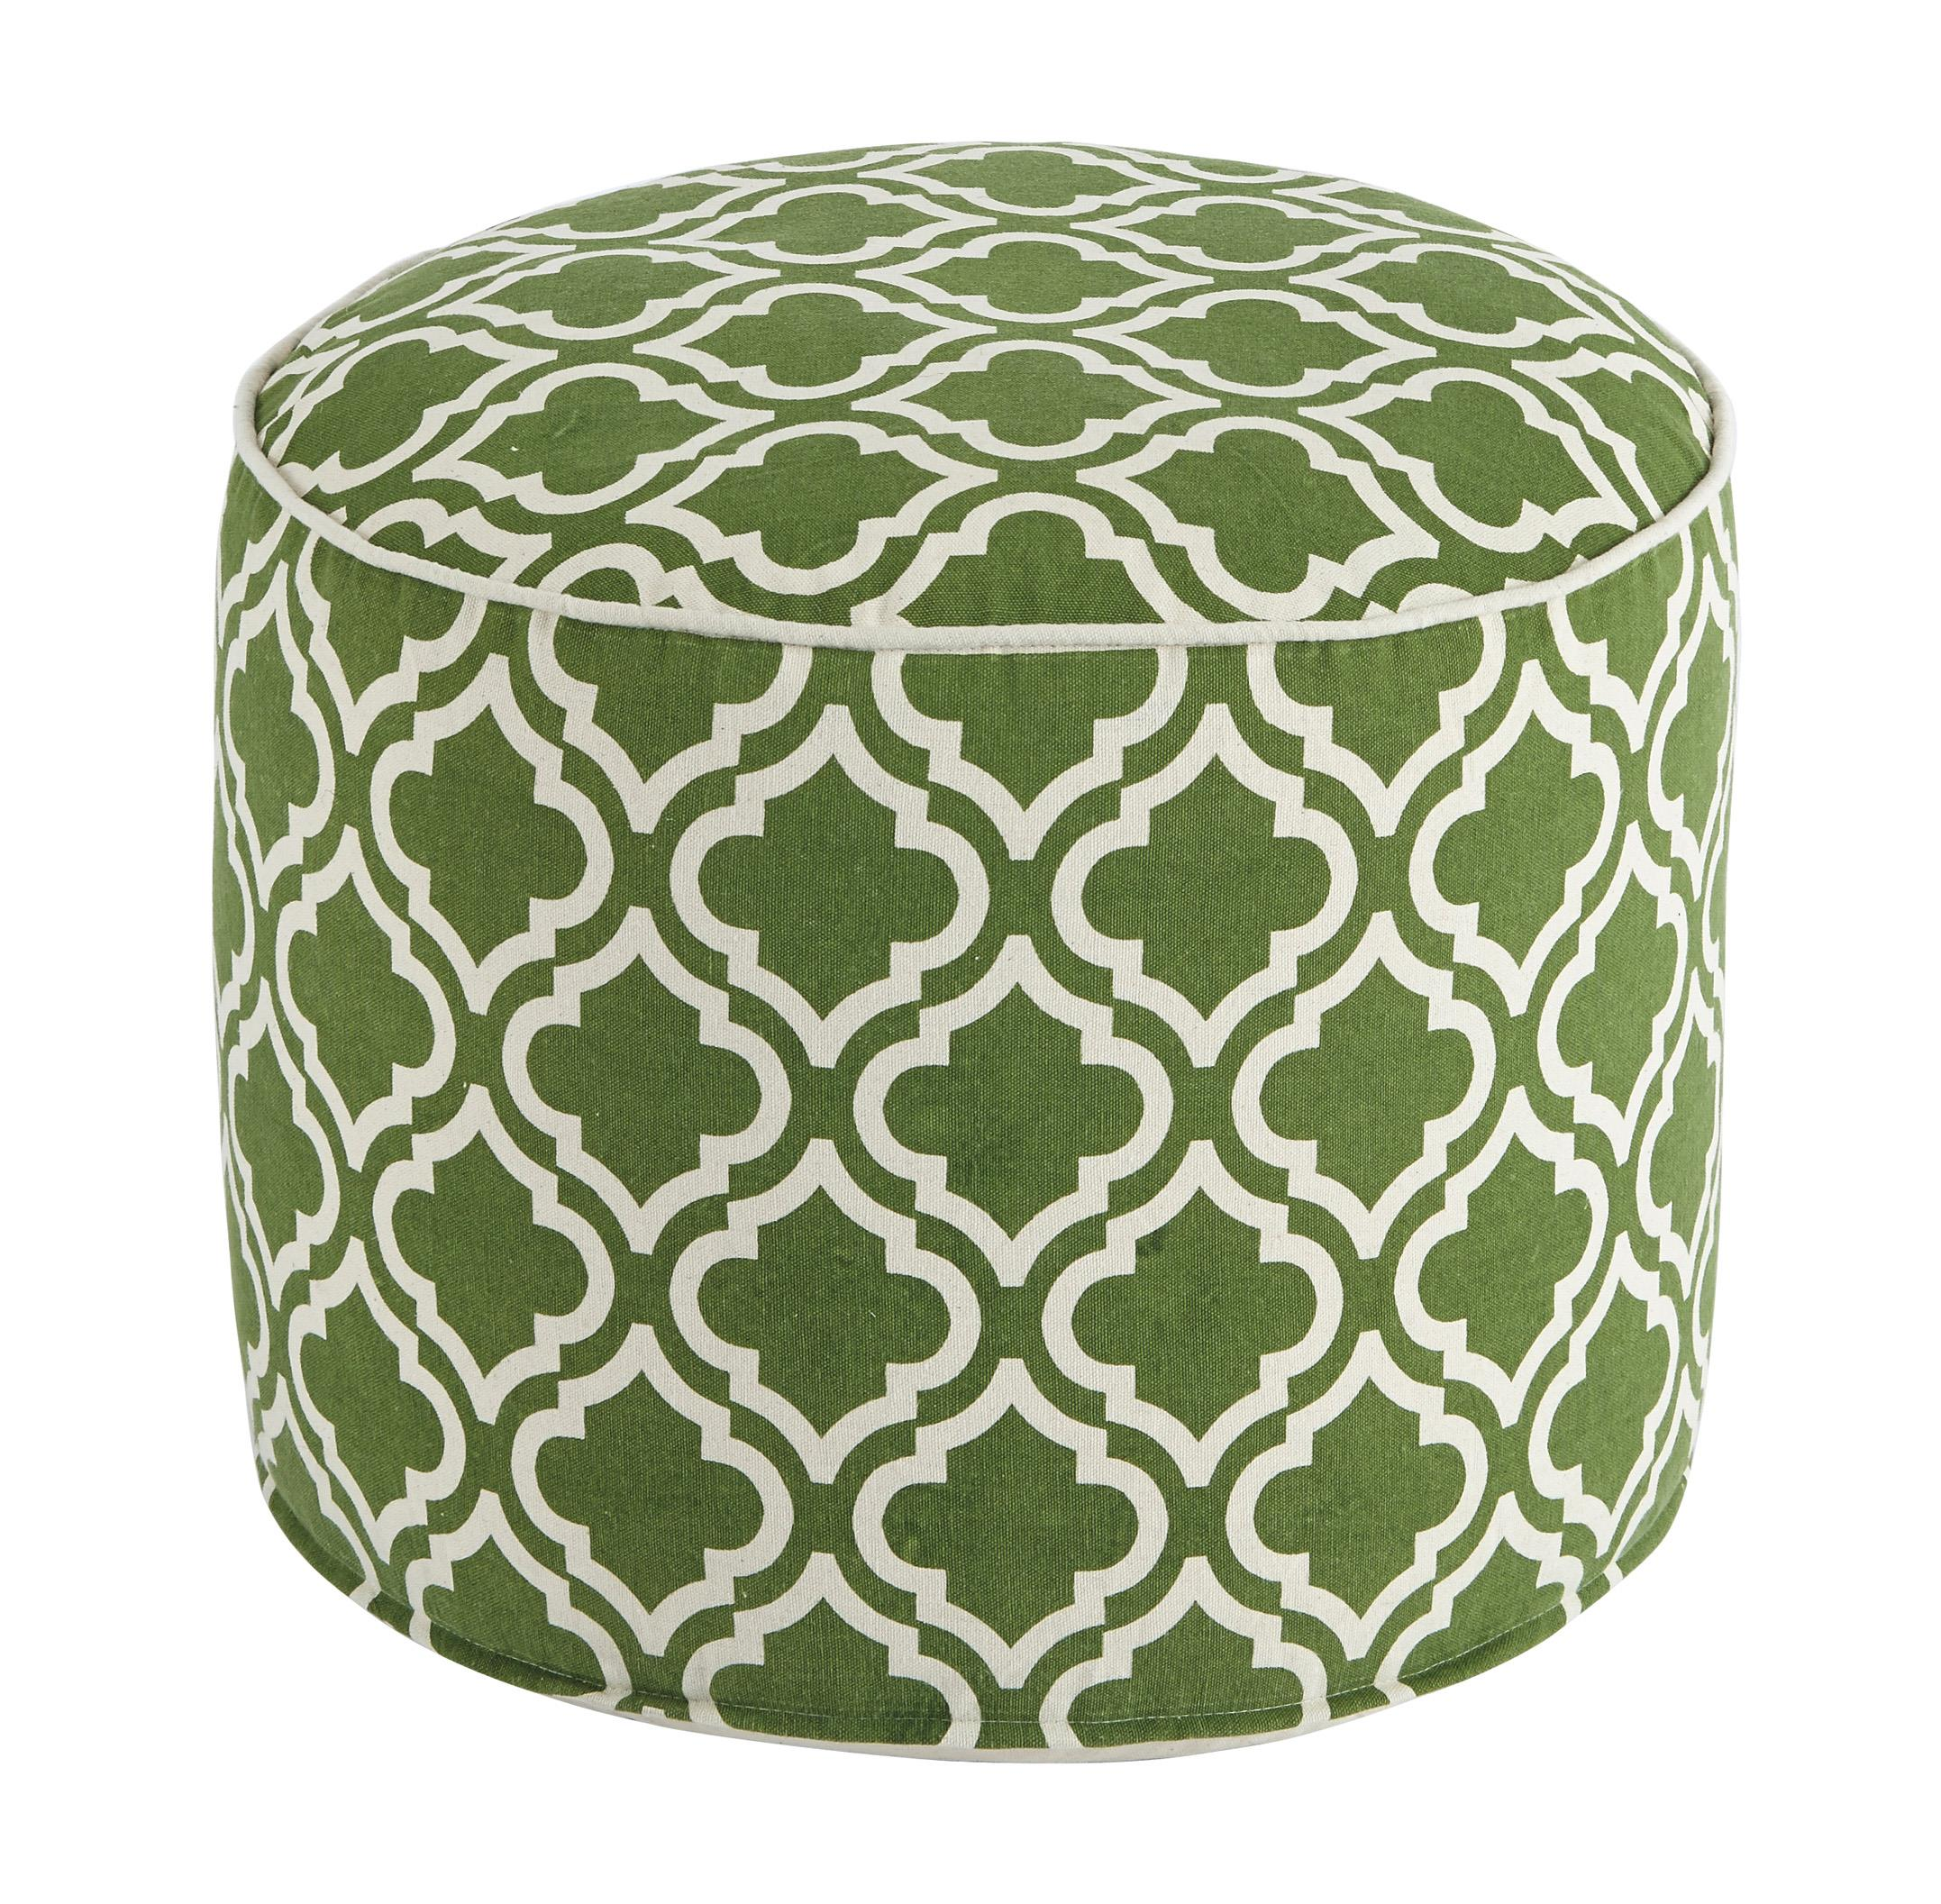 Signature Design by Ashley Poufs Geometric - Green/White Pouf - Item Number: A1000426